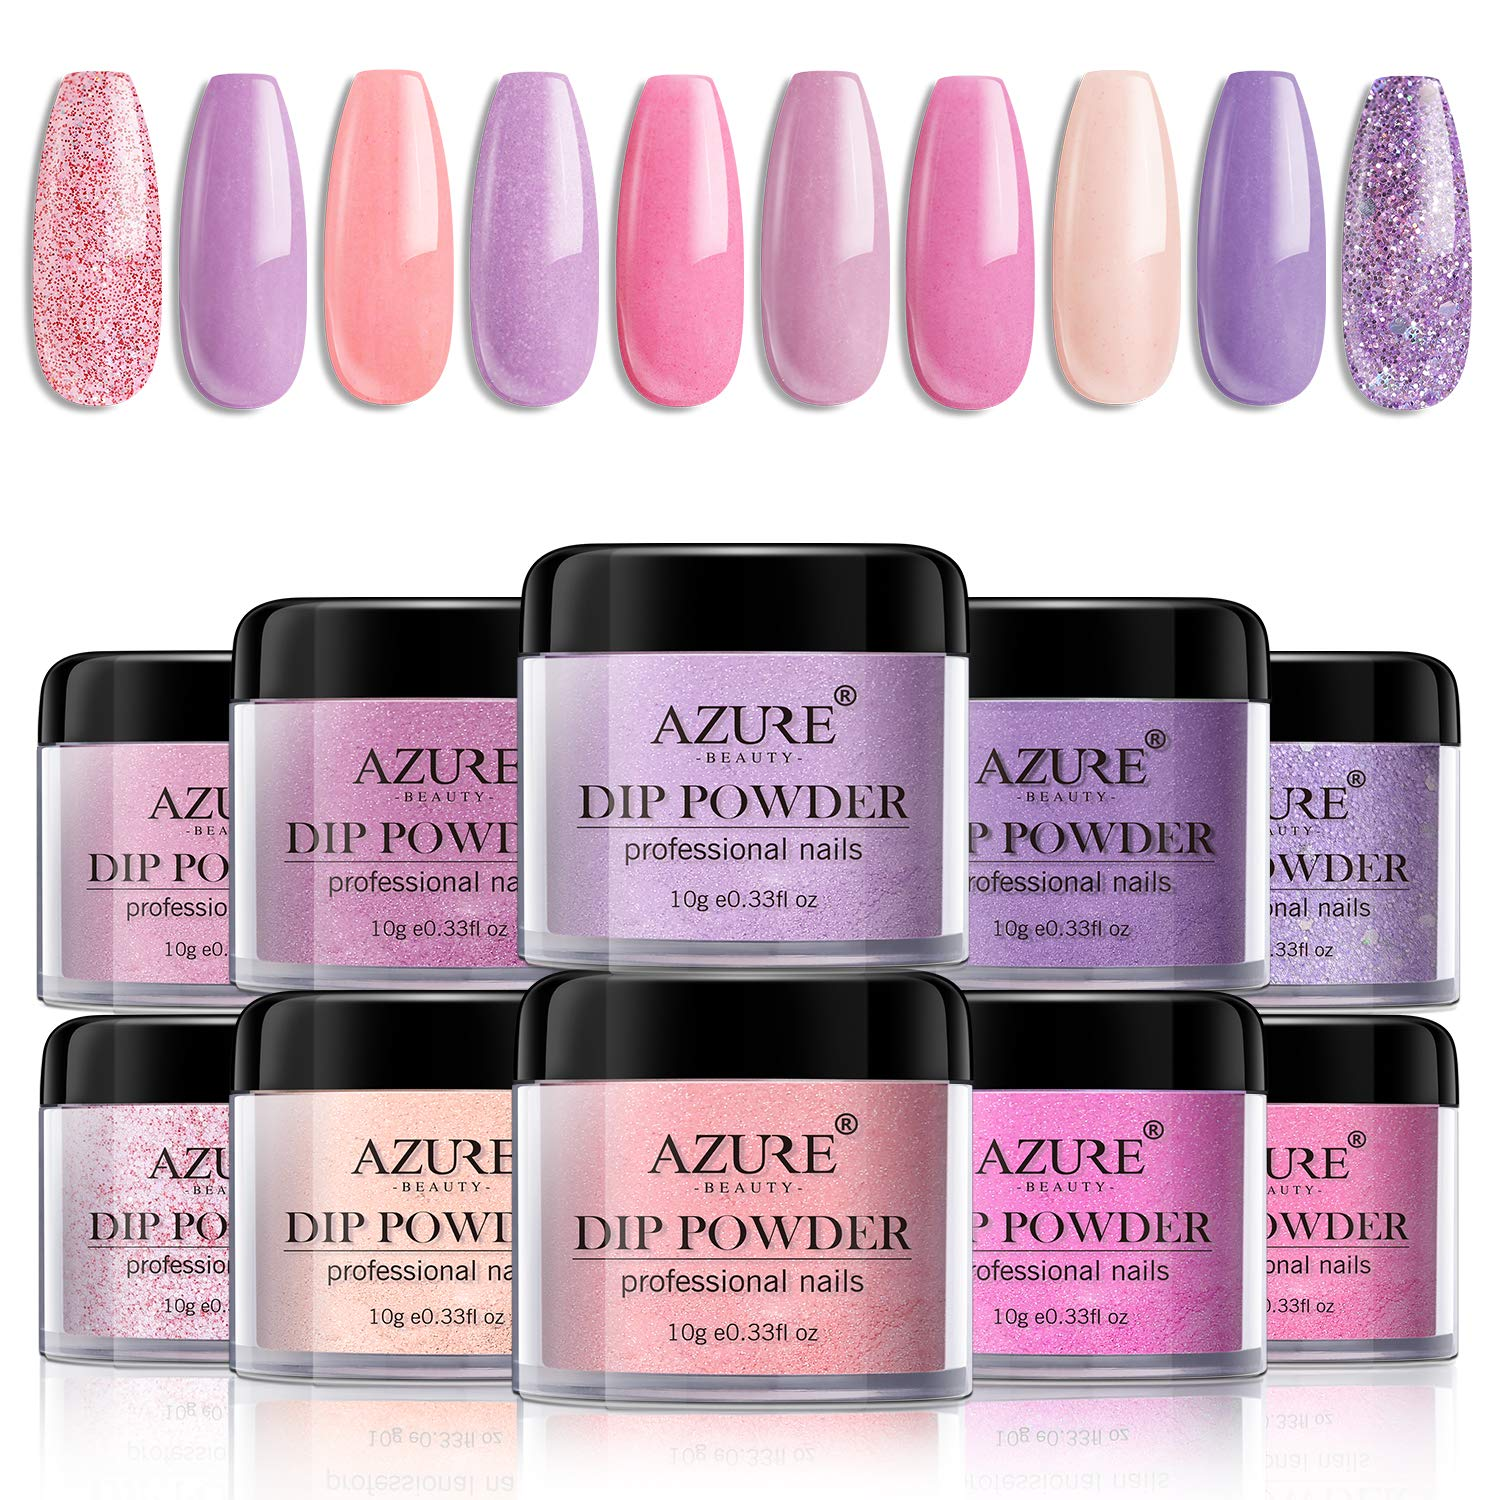 Dip Powder Nails Color Set - Pink Purple 10 Colors Dip Powders Nails Set for French Nail Manicure Nail Art No UV/LED Nail Lamp Needed by AZUREBEAUTY